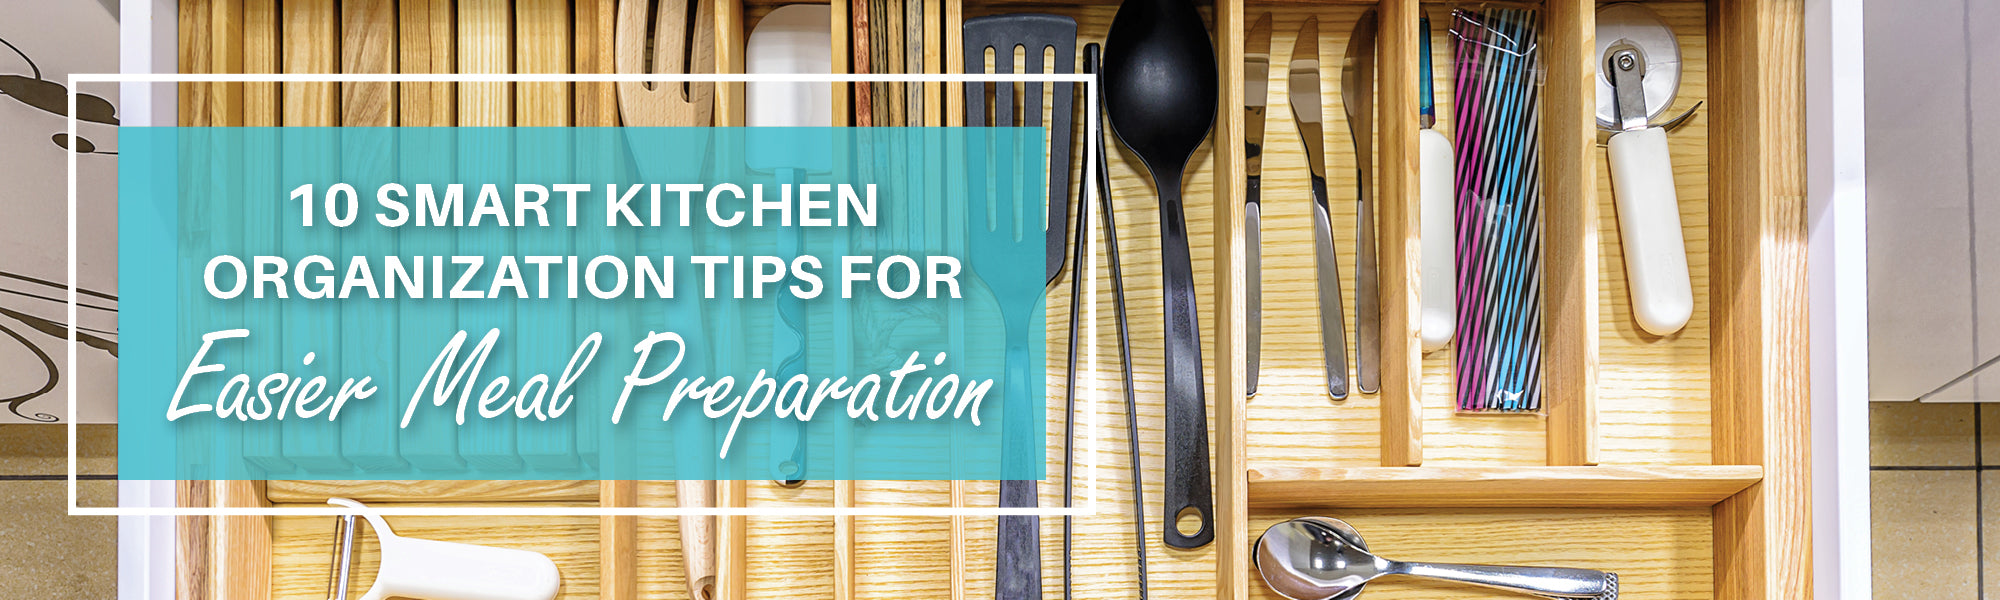 10 Smart Kitchen Organization Tips for Easier Meal Preparation